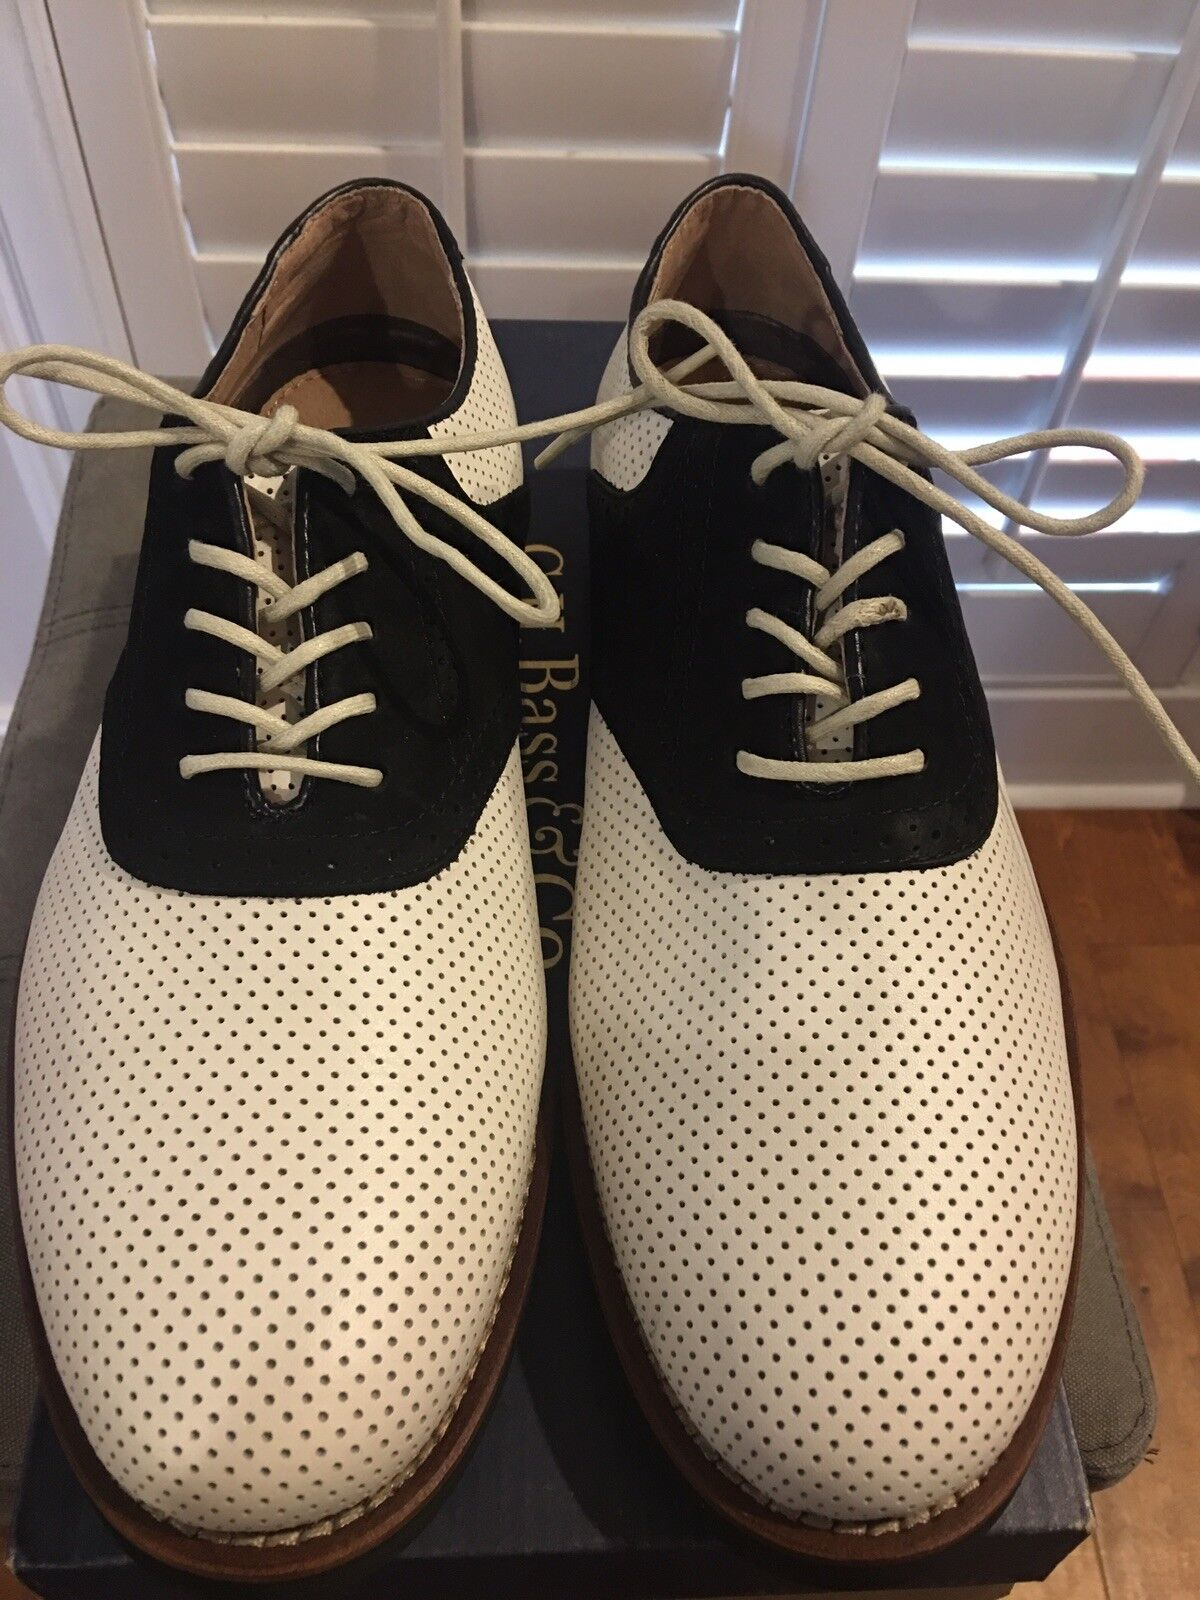 GH Bass Burlington Oxfords White Blk Size 9D